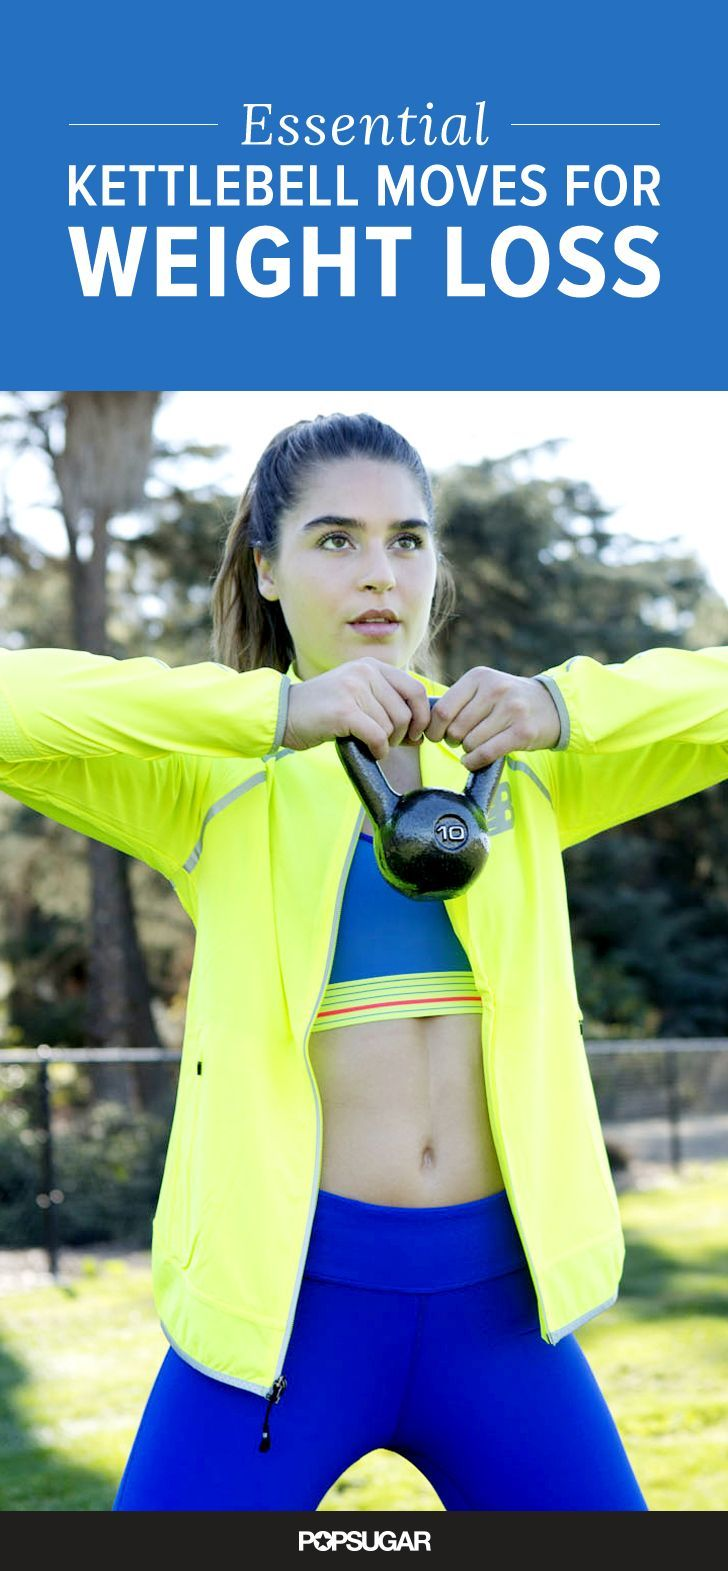 The amount of calories you can burn using kettlebells can be amazingly high: a study by the American Council on Exercise found that the average person burns 400 calories in 20 minutes when doing kettlebell exercises. Here are tips on how to get the most our of your kettlebell workouts.